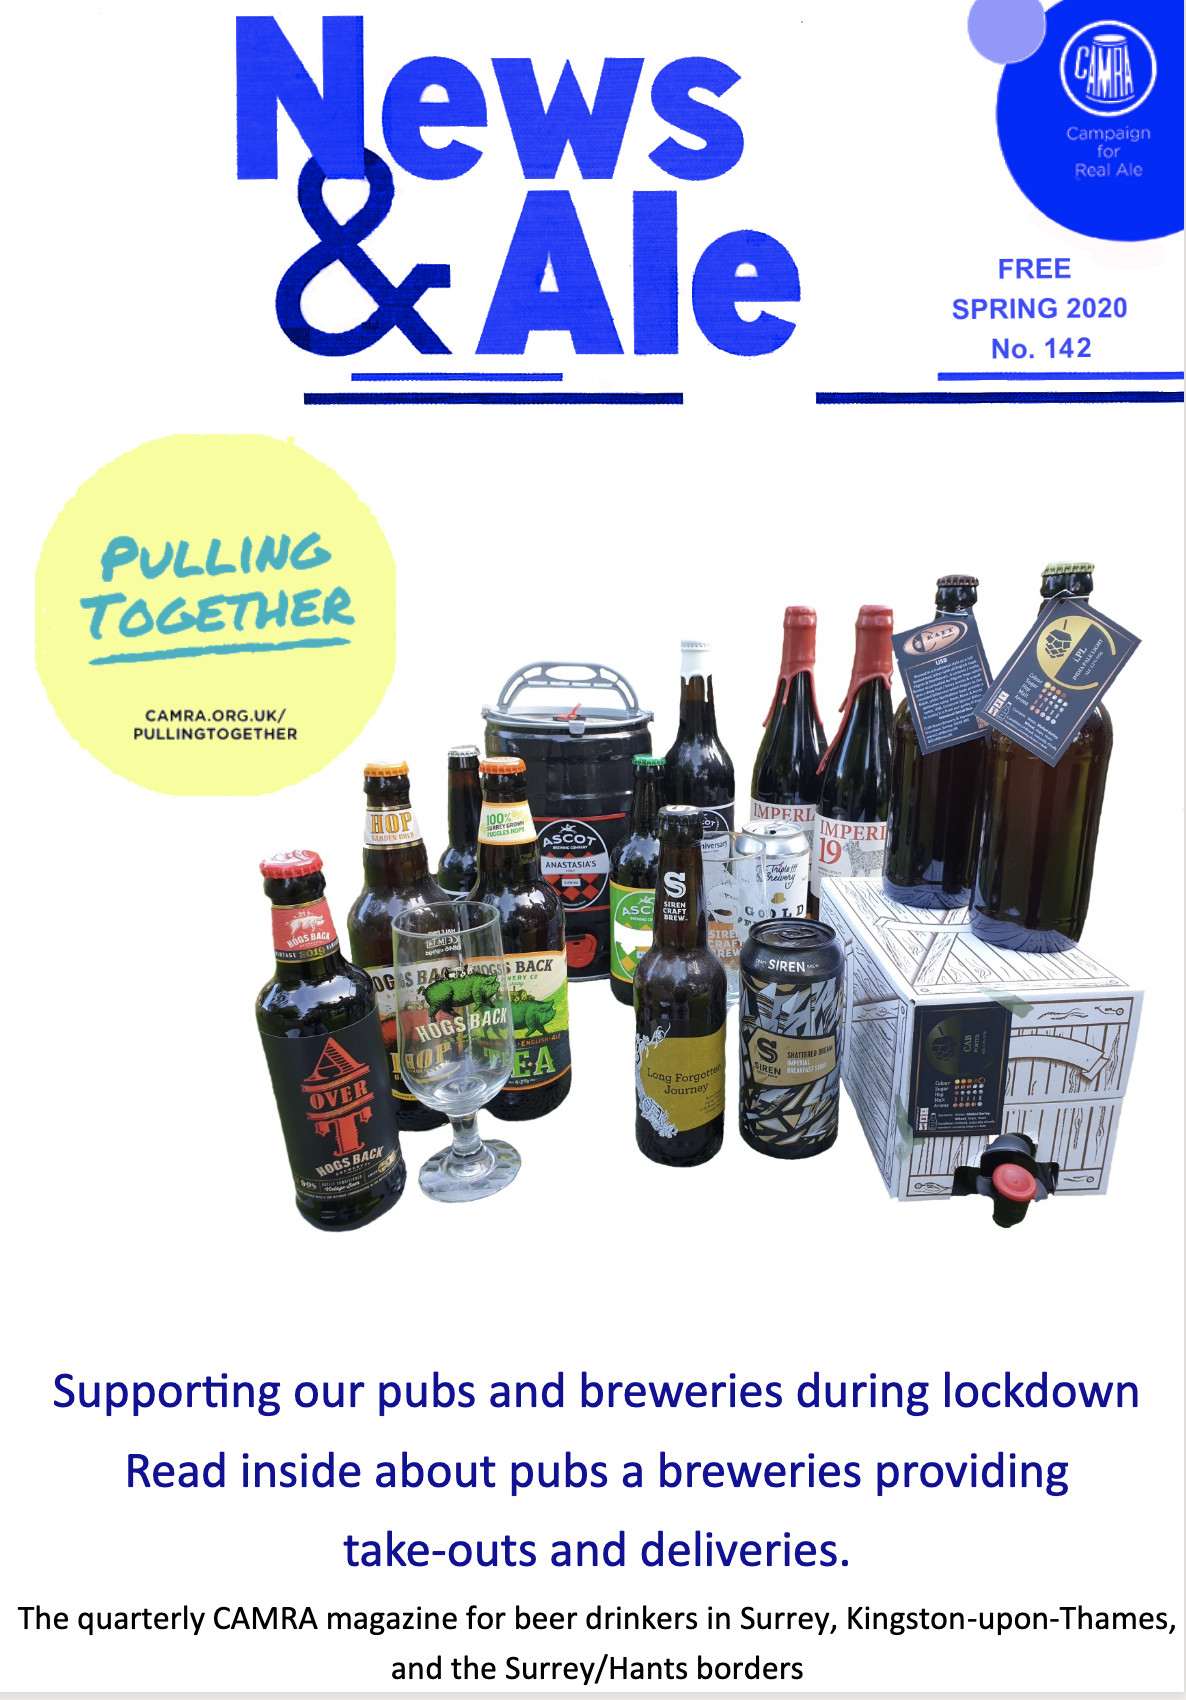 News & Ale (Surrey Hants Borders) Spring 2020